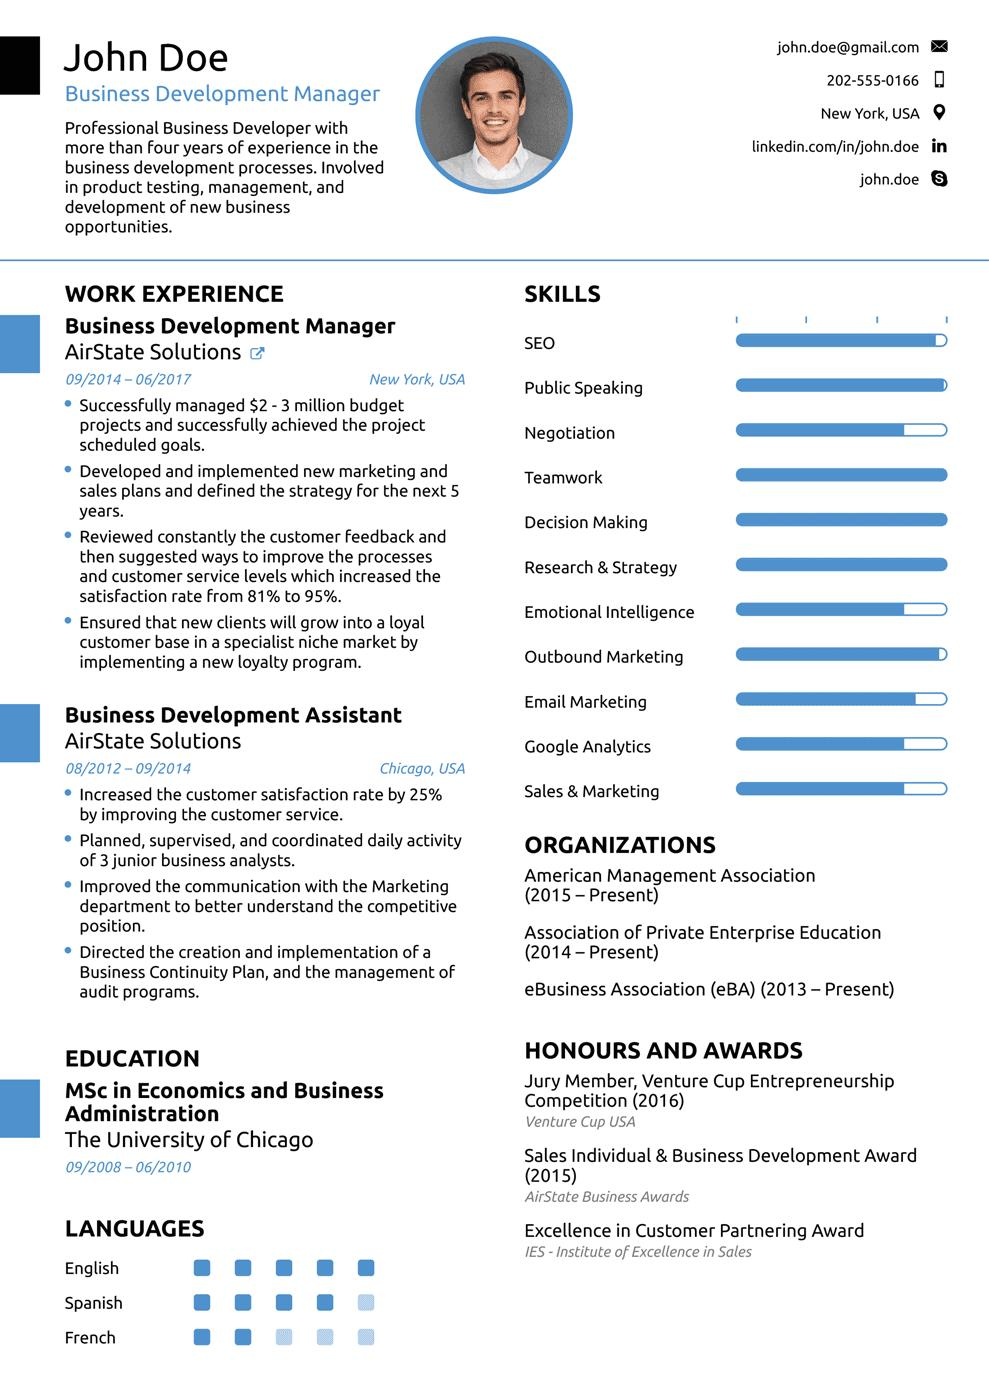 97 Inspirational Latest Resume Layout for Ideas